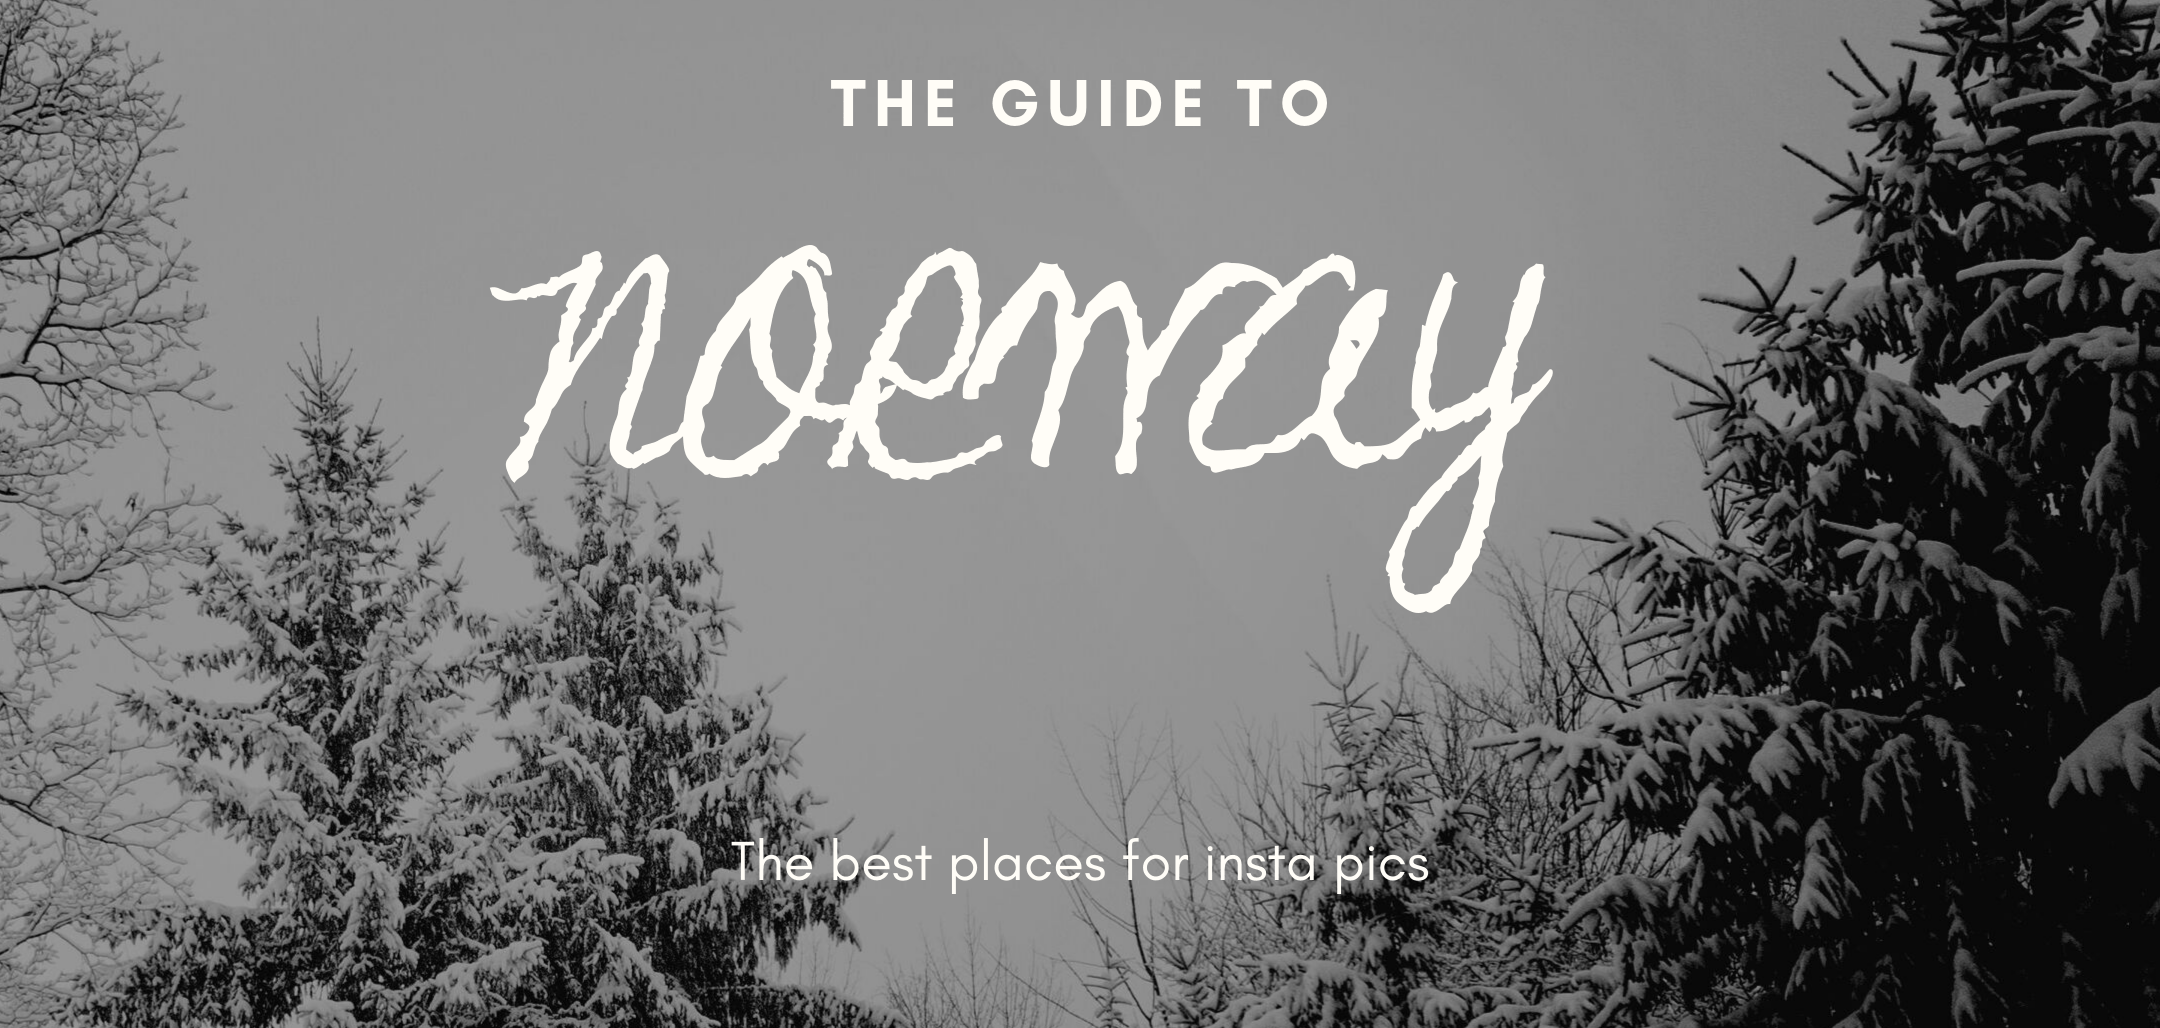 The best places for inta pics in Norway